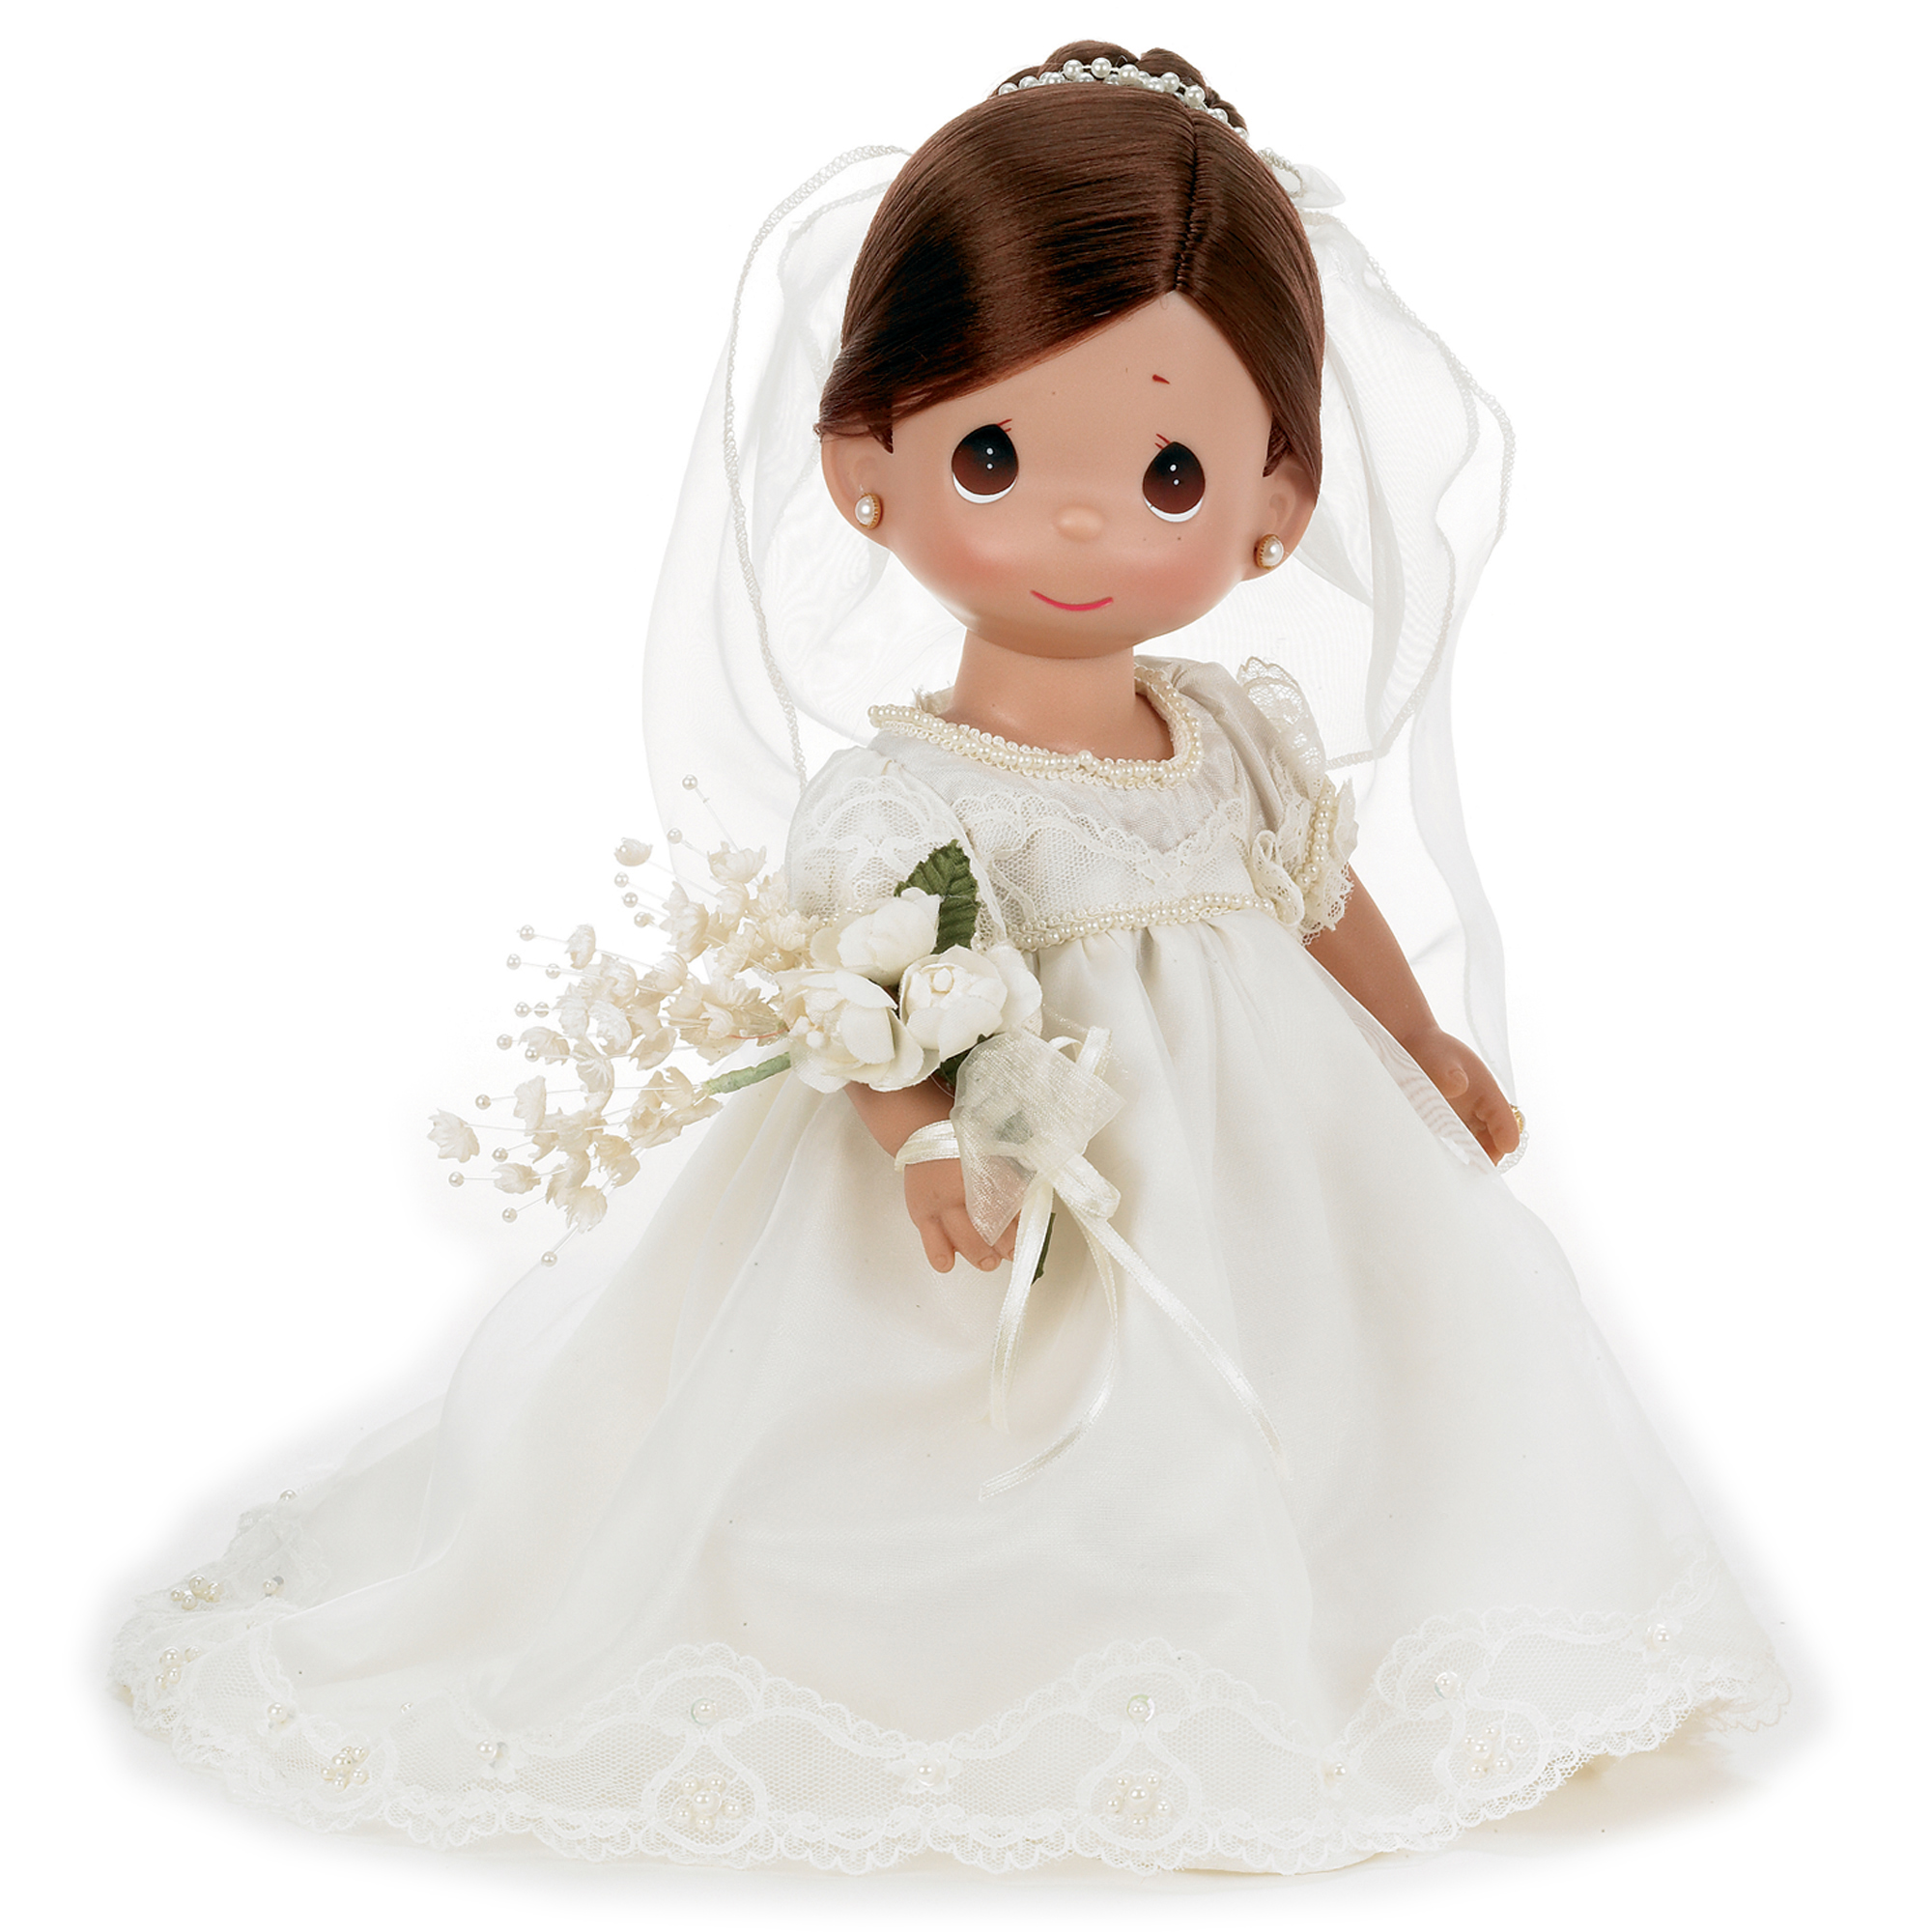 Precious Moments Dolls by The Doll Maker, Linda Rick, Enchanted Dreams Bride Brunette, 12 inch doll